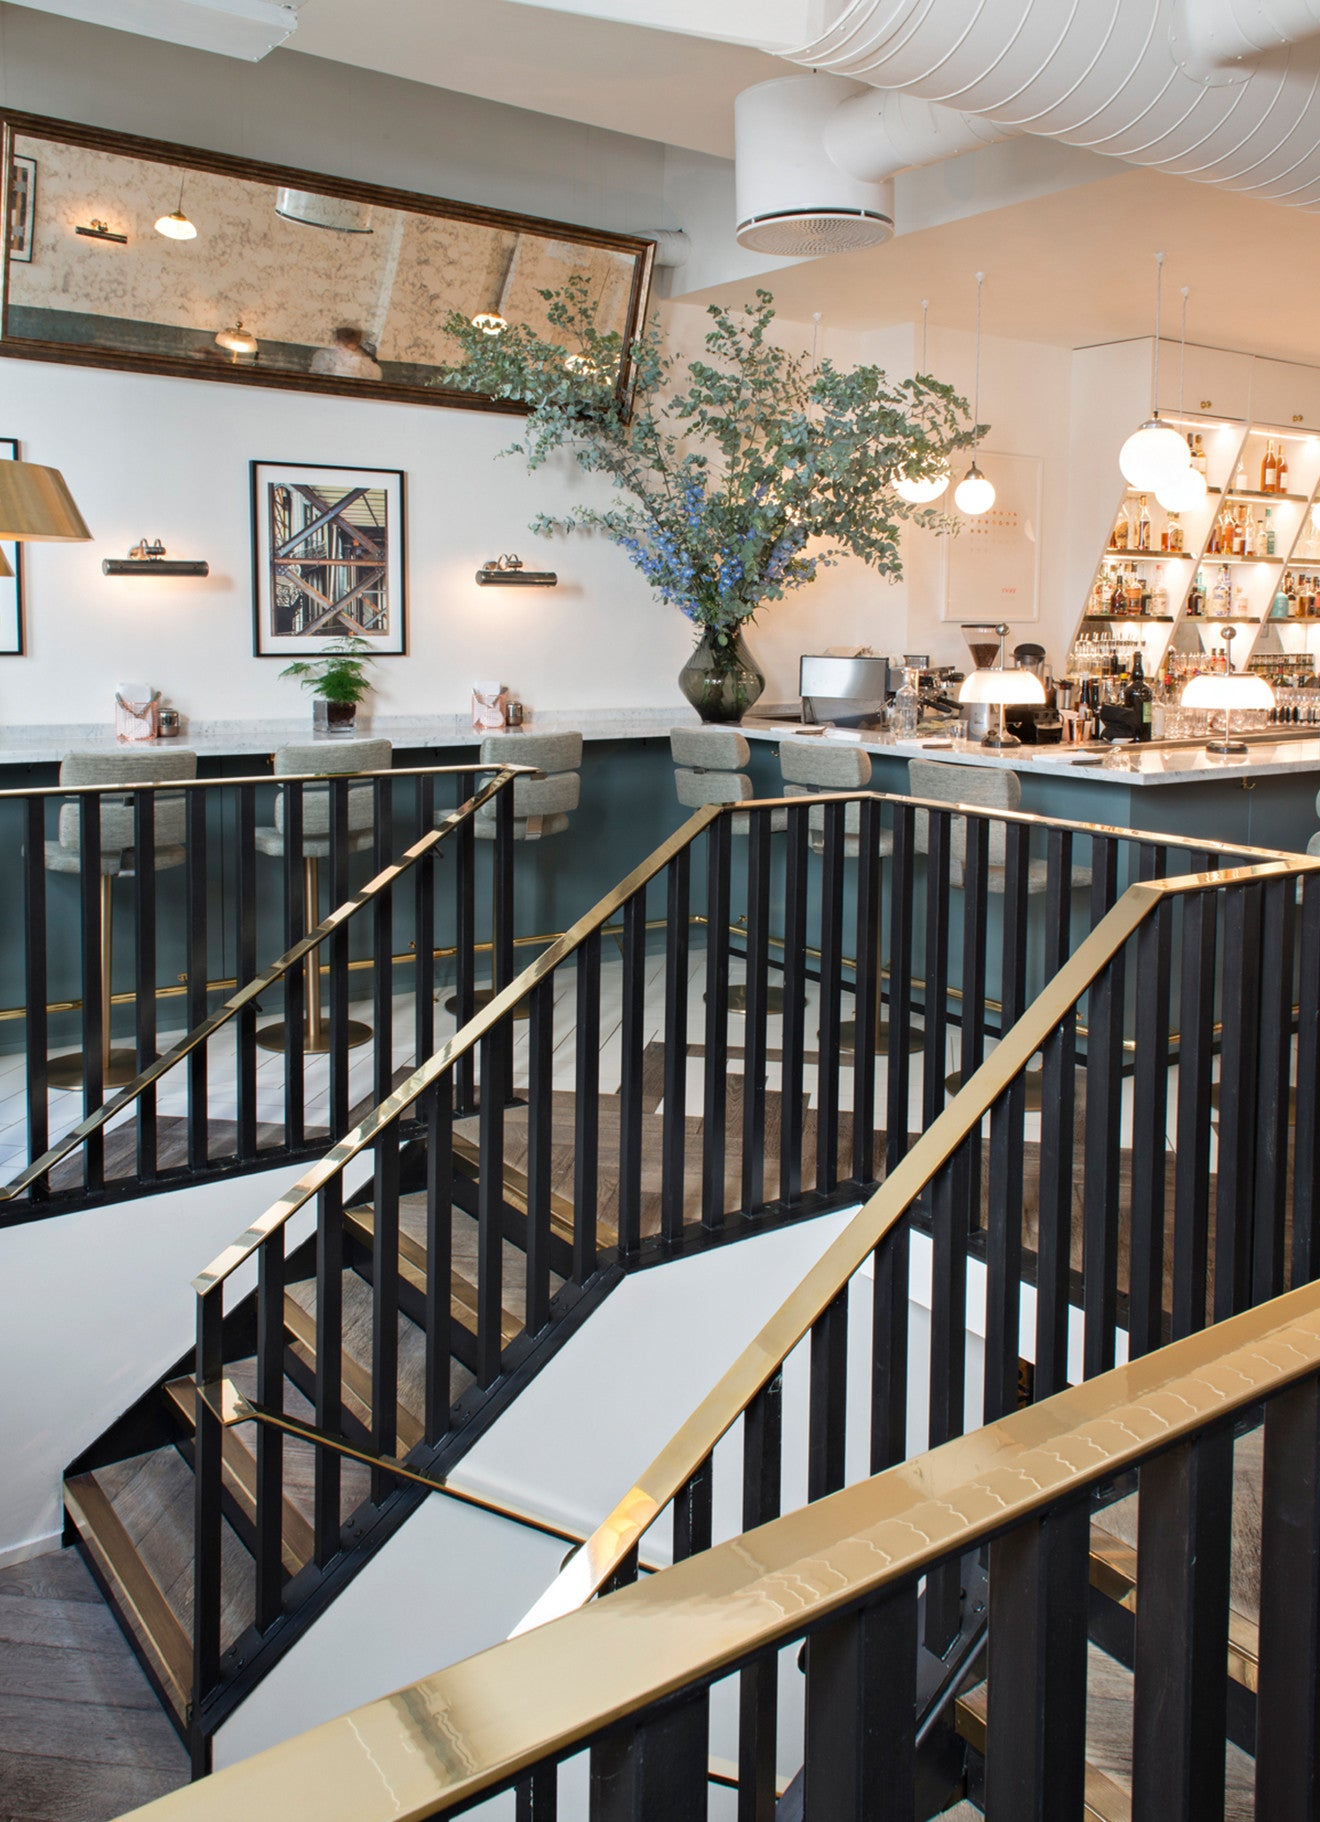 Brass and wood staircase at Frenchie restaurant in Covent Garden London